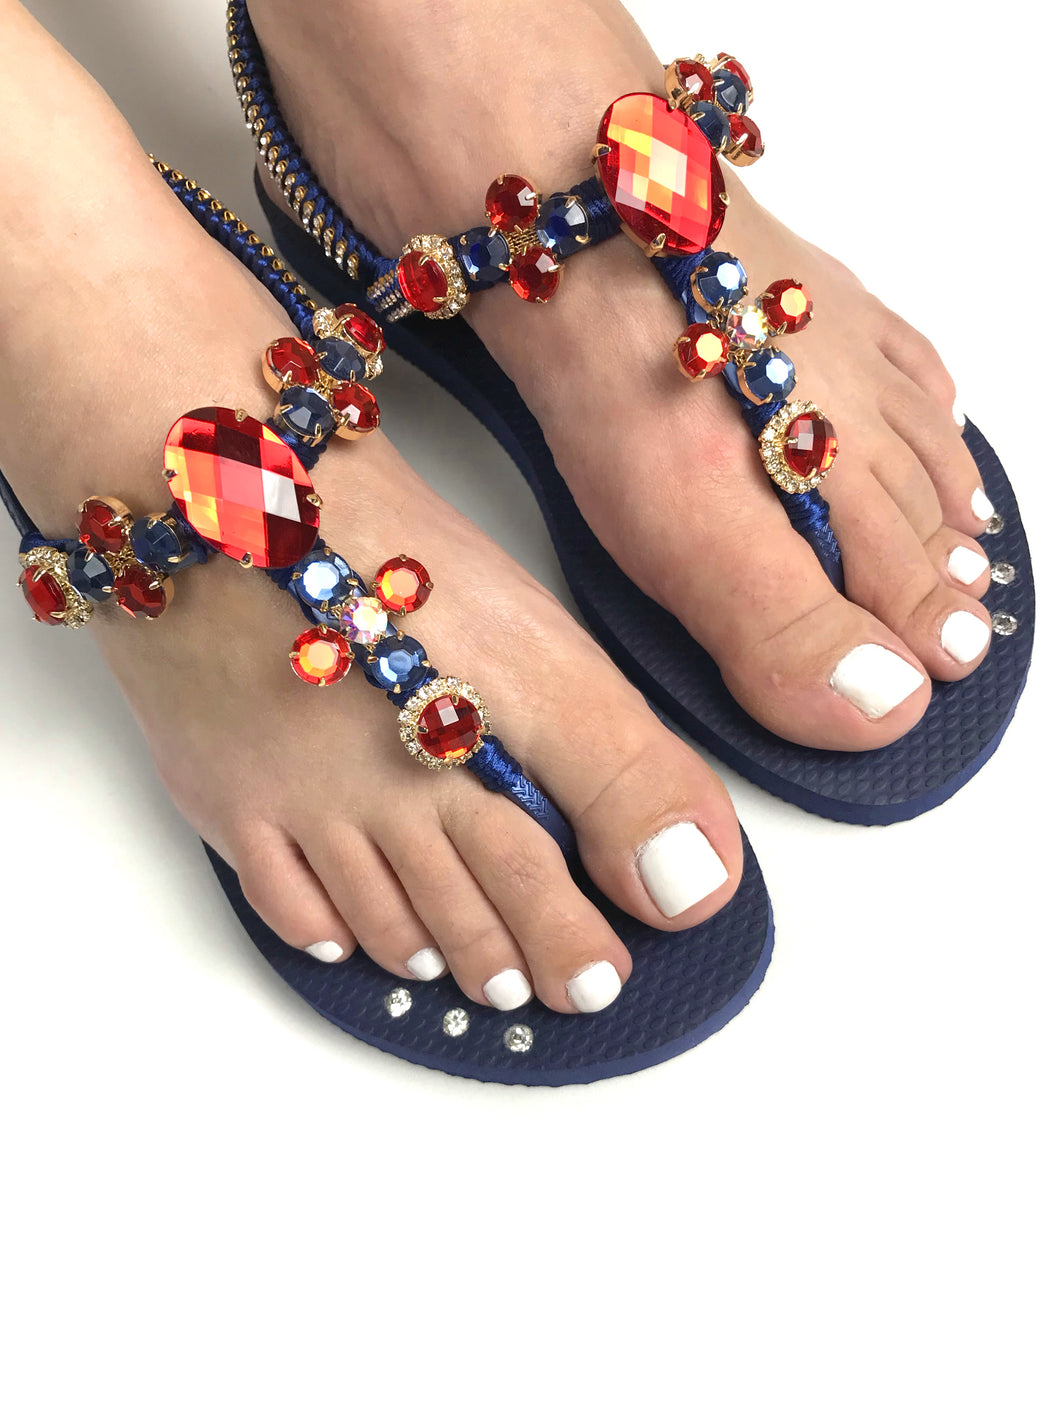 Customized HAVAIANAS with adjustable ankle strap, red rhinestones/crystals - FREEDOM